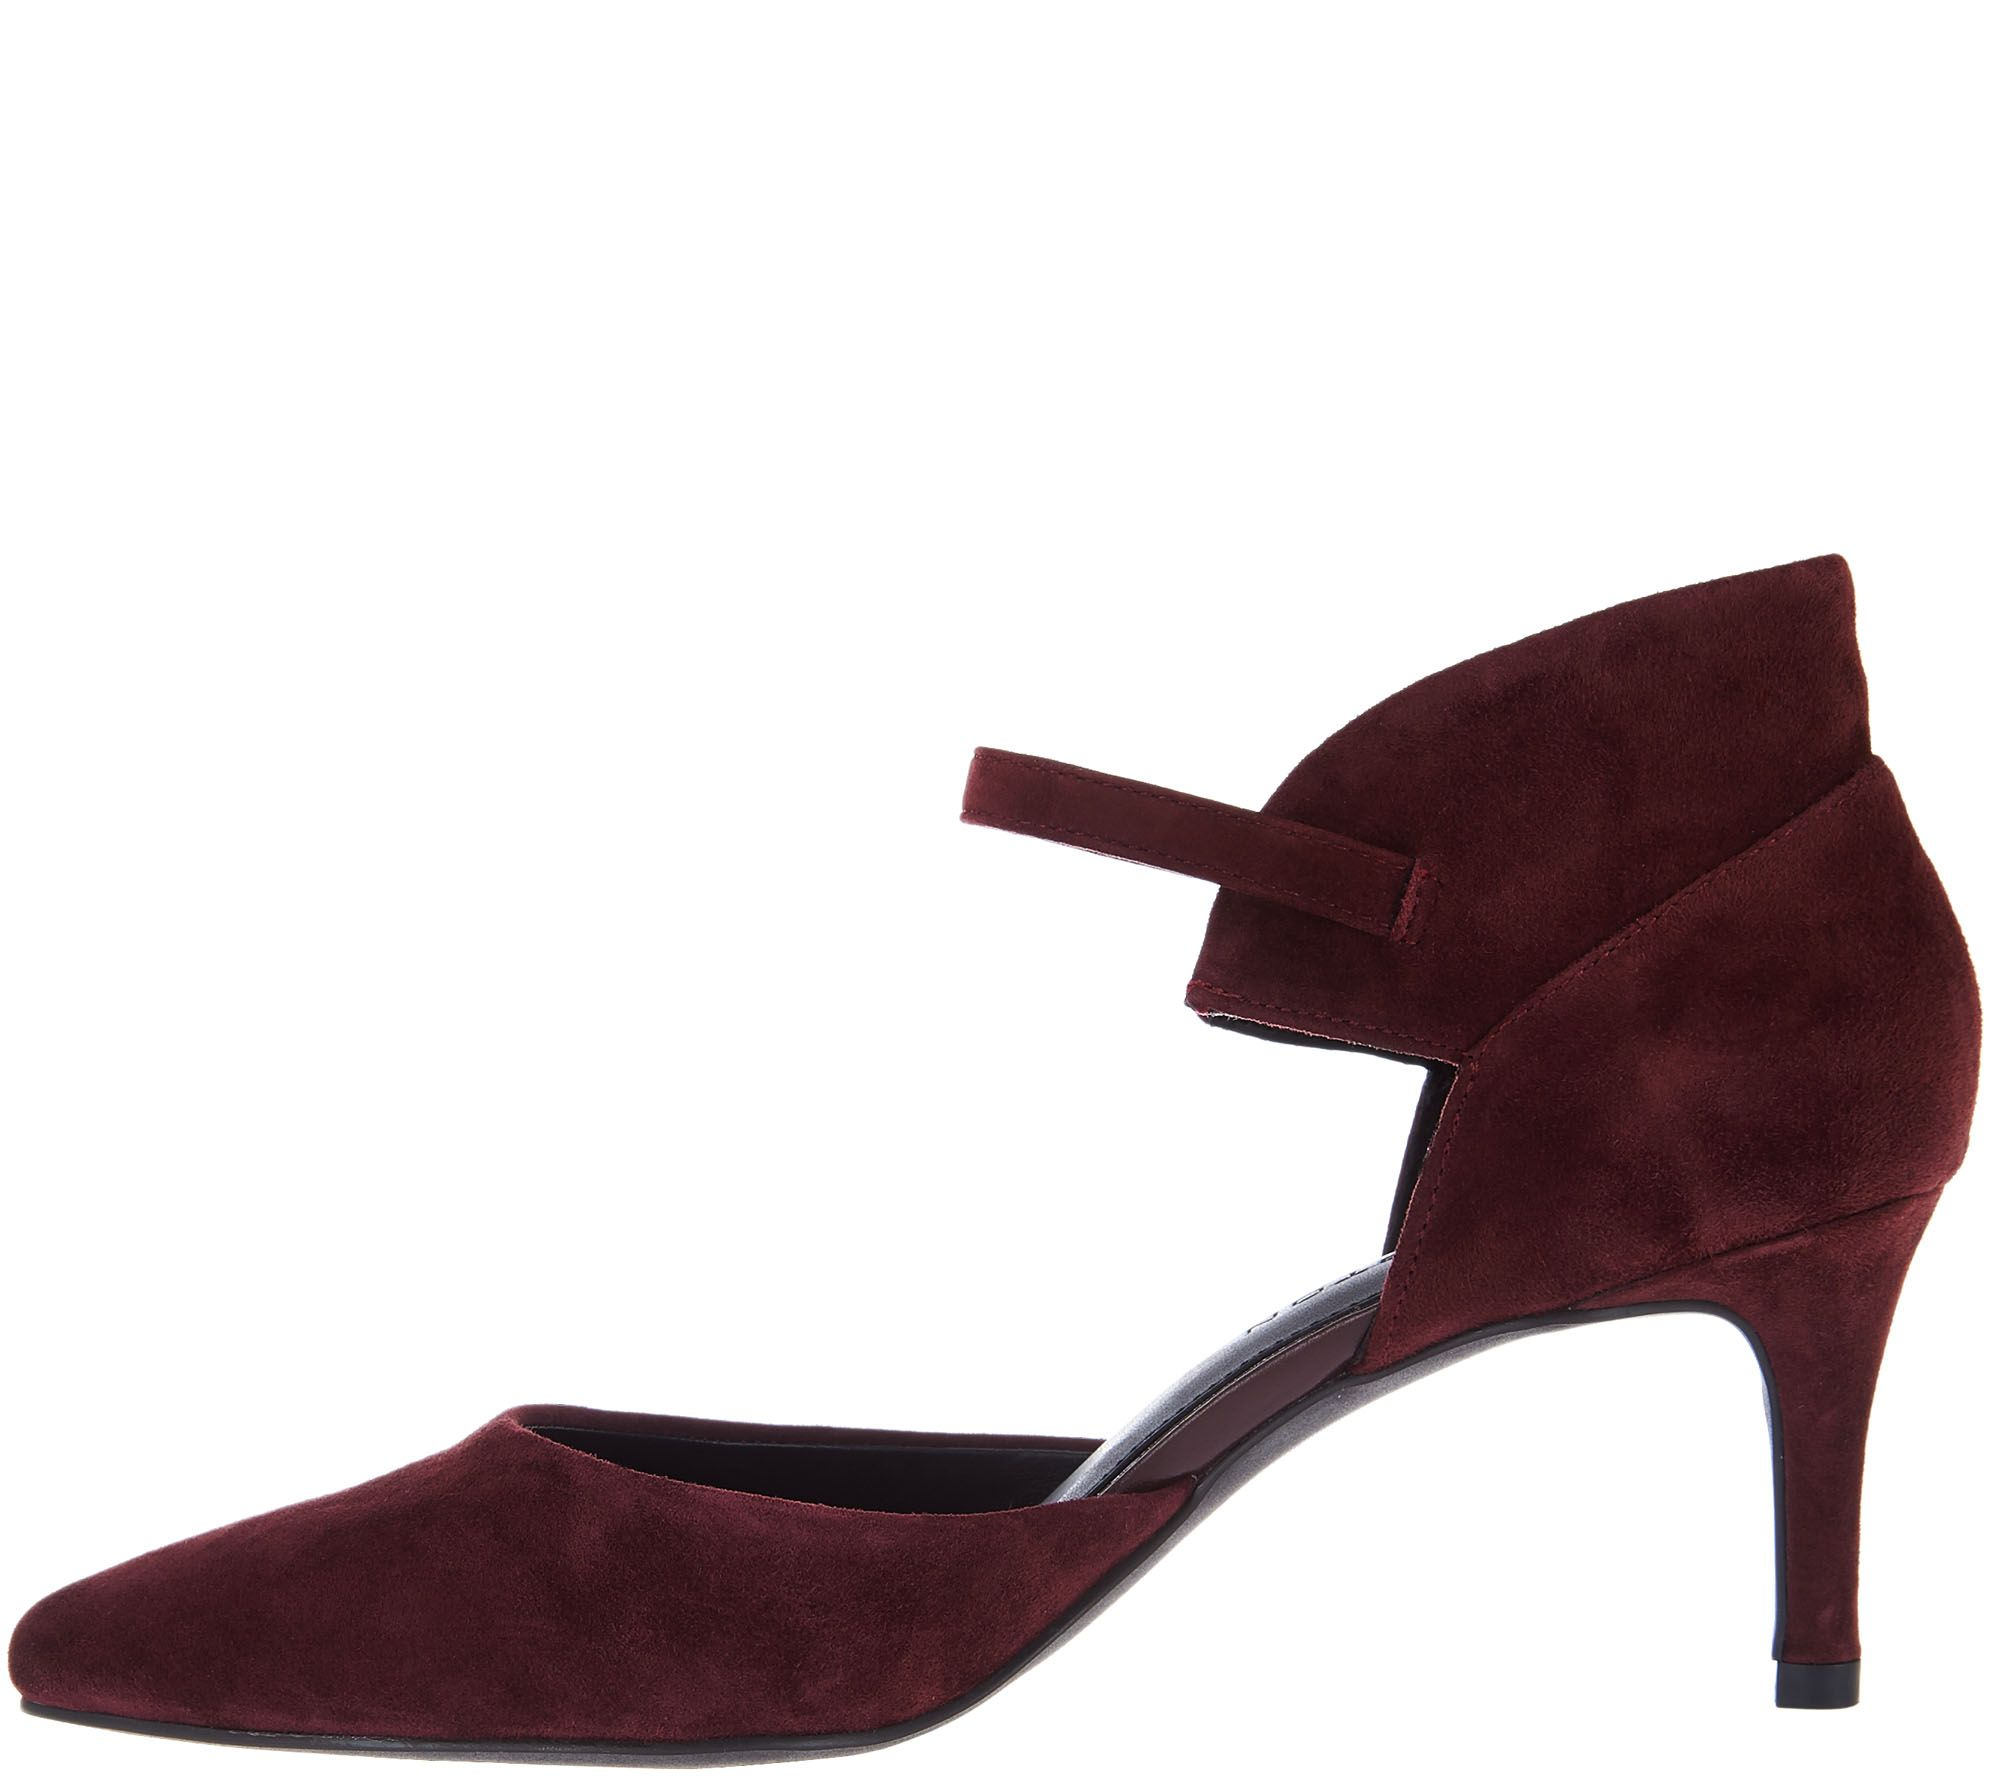 H by Halston Suede Heels with Adjustable Ankle Strap - Laurie clearance supply buy cheap get to buy cheap affordable sale official okdrwbtrOw